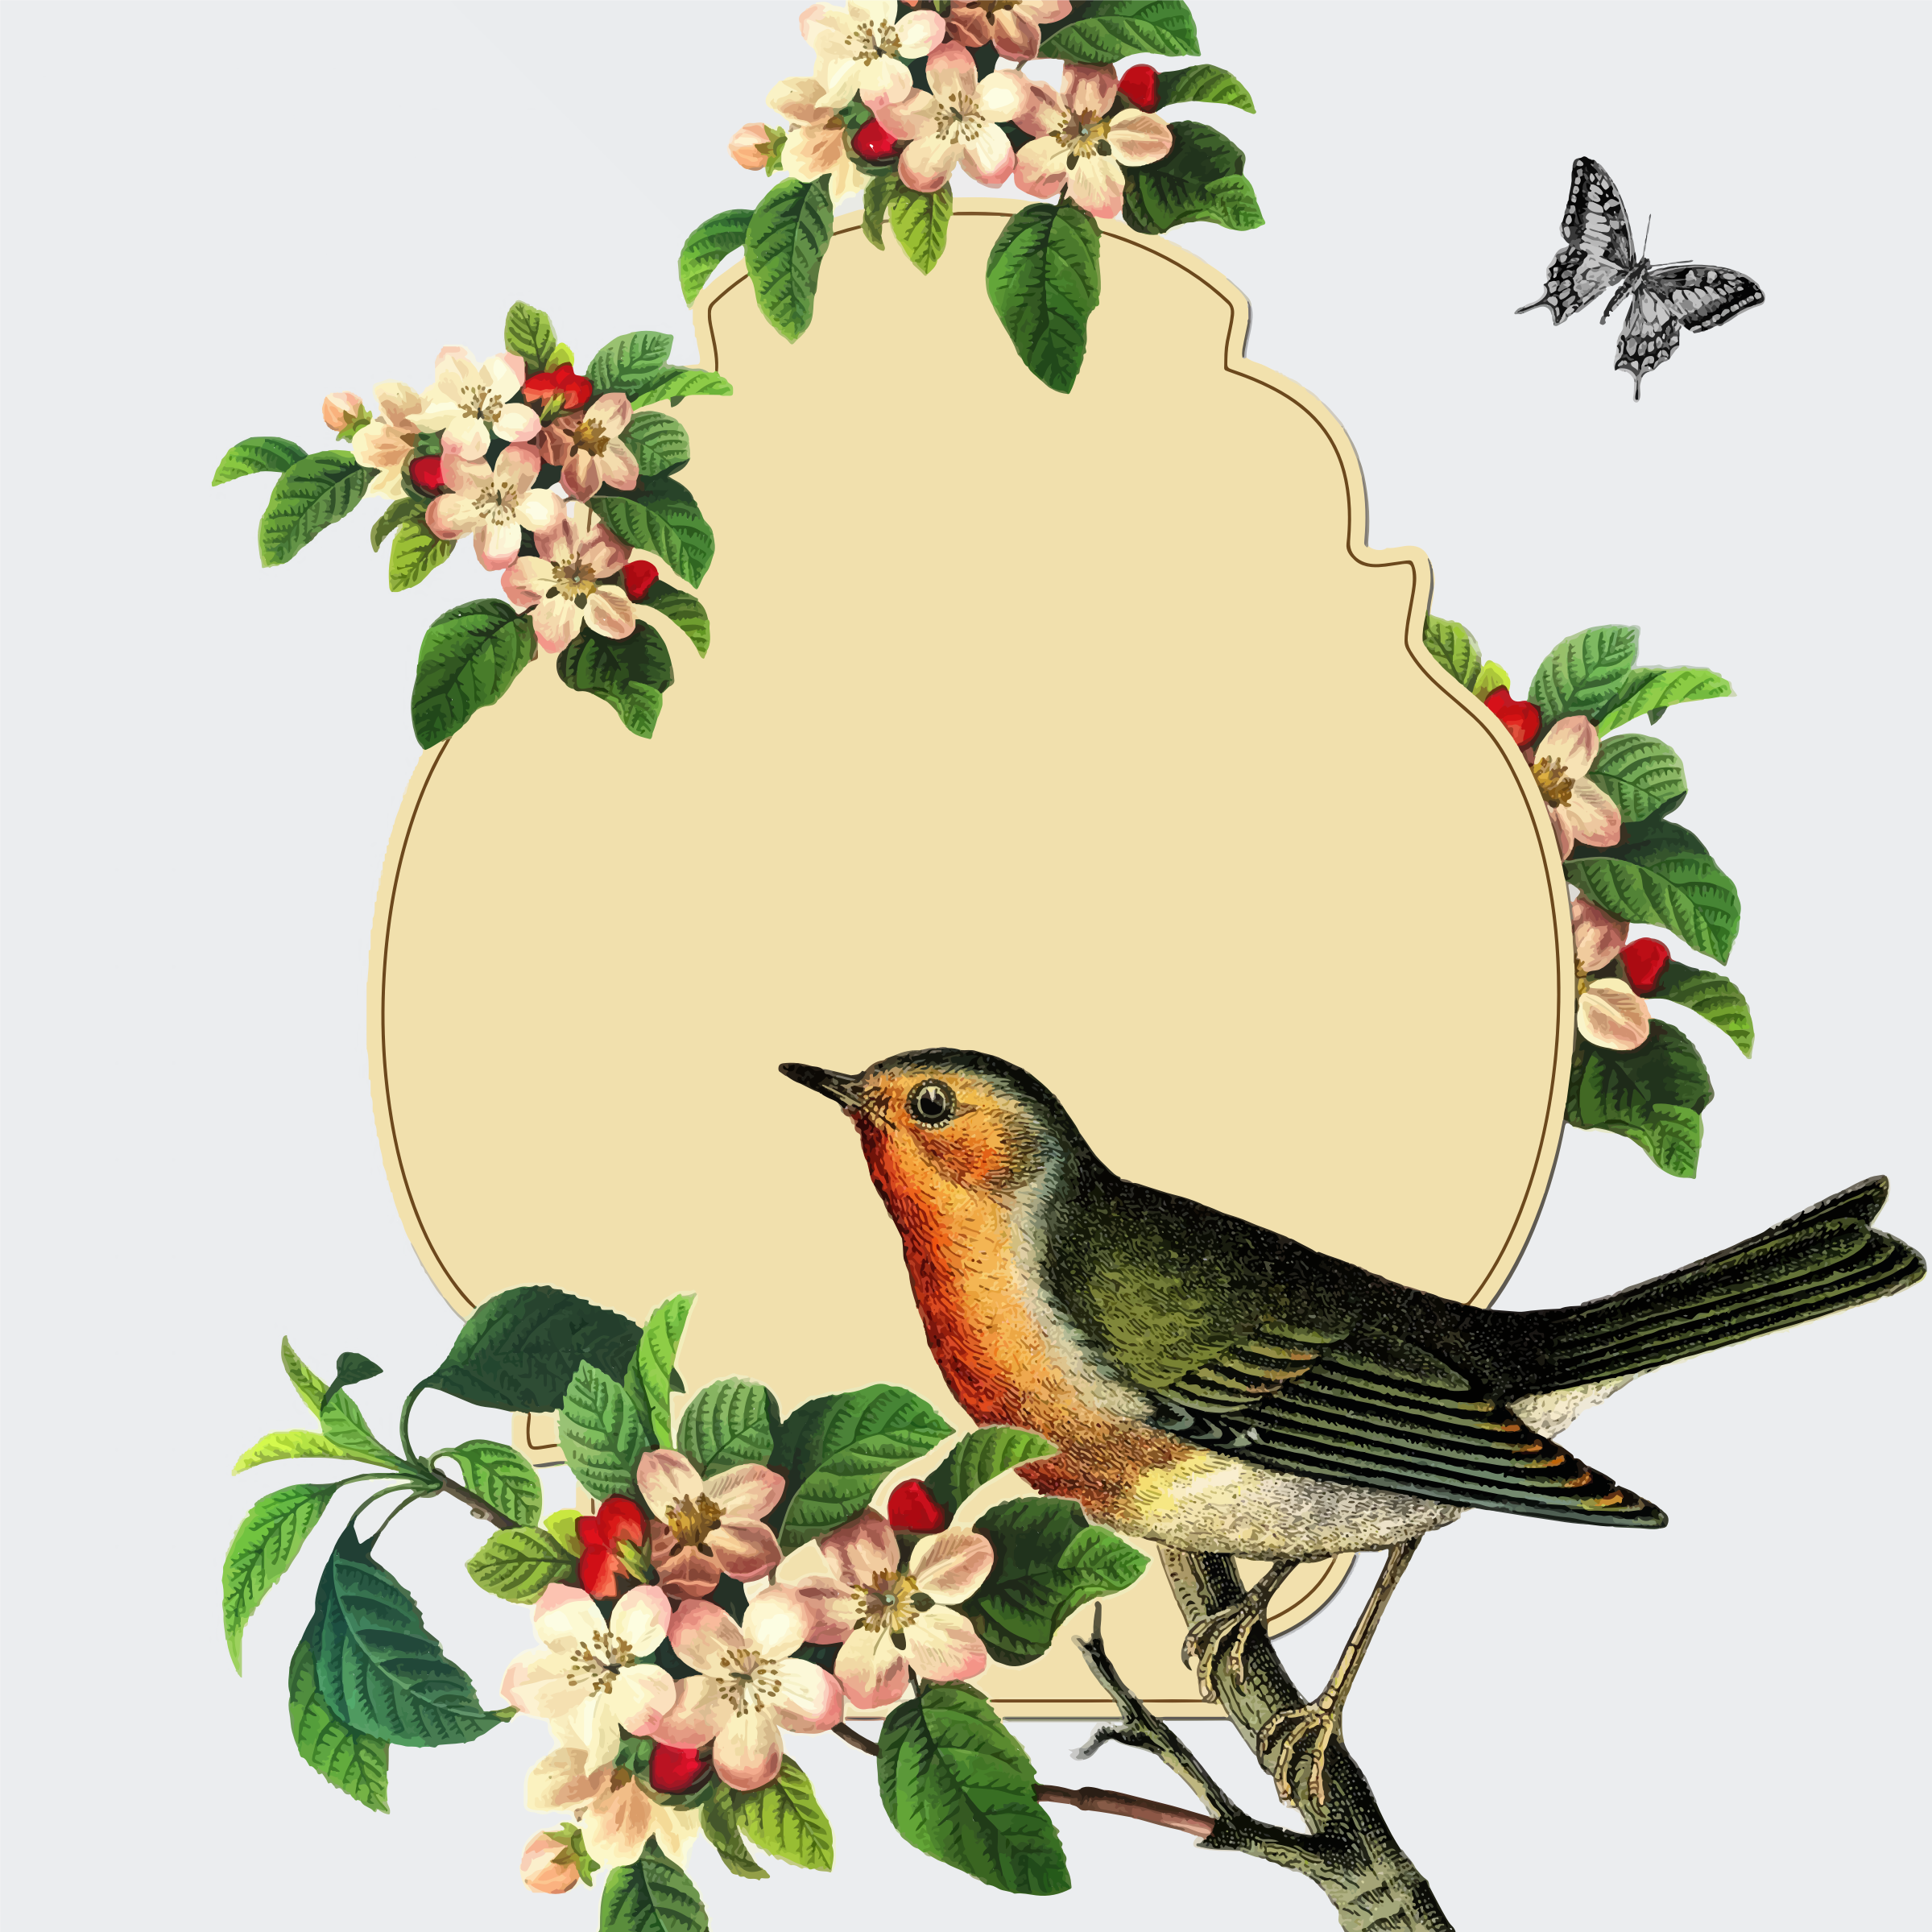 Vintage Bird With Apple Blossom by GDJ